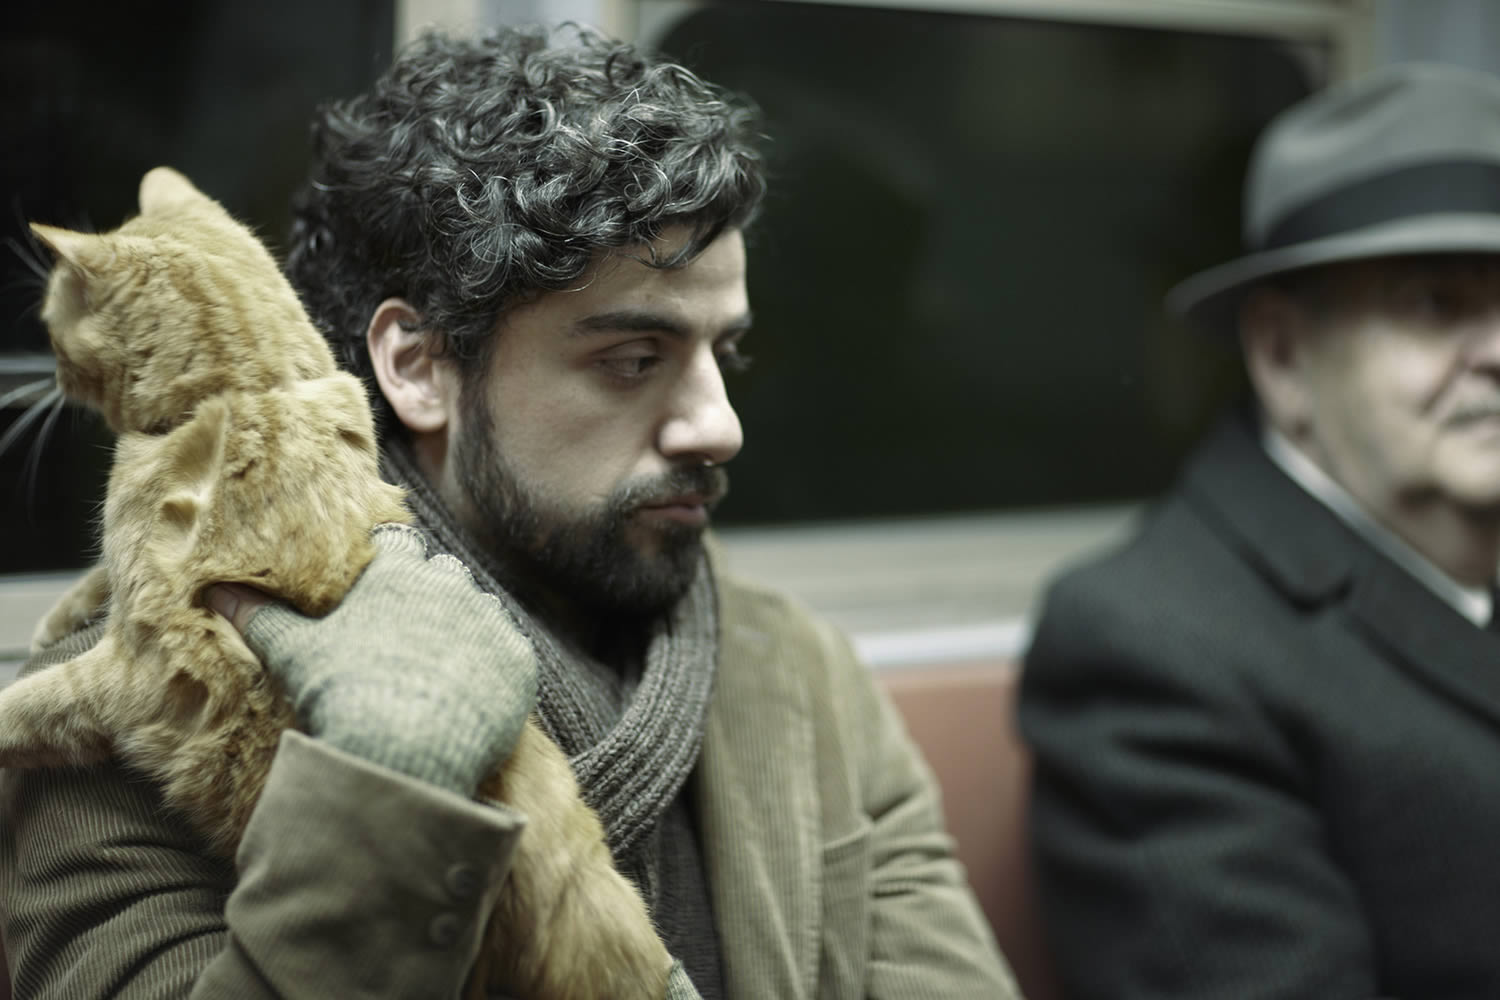 oscar holding cat in subway train. from Inside Llewyn Davis